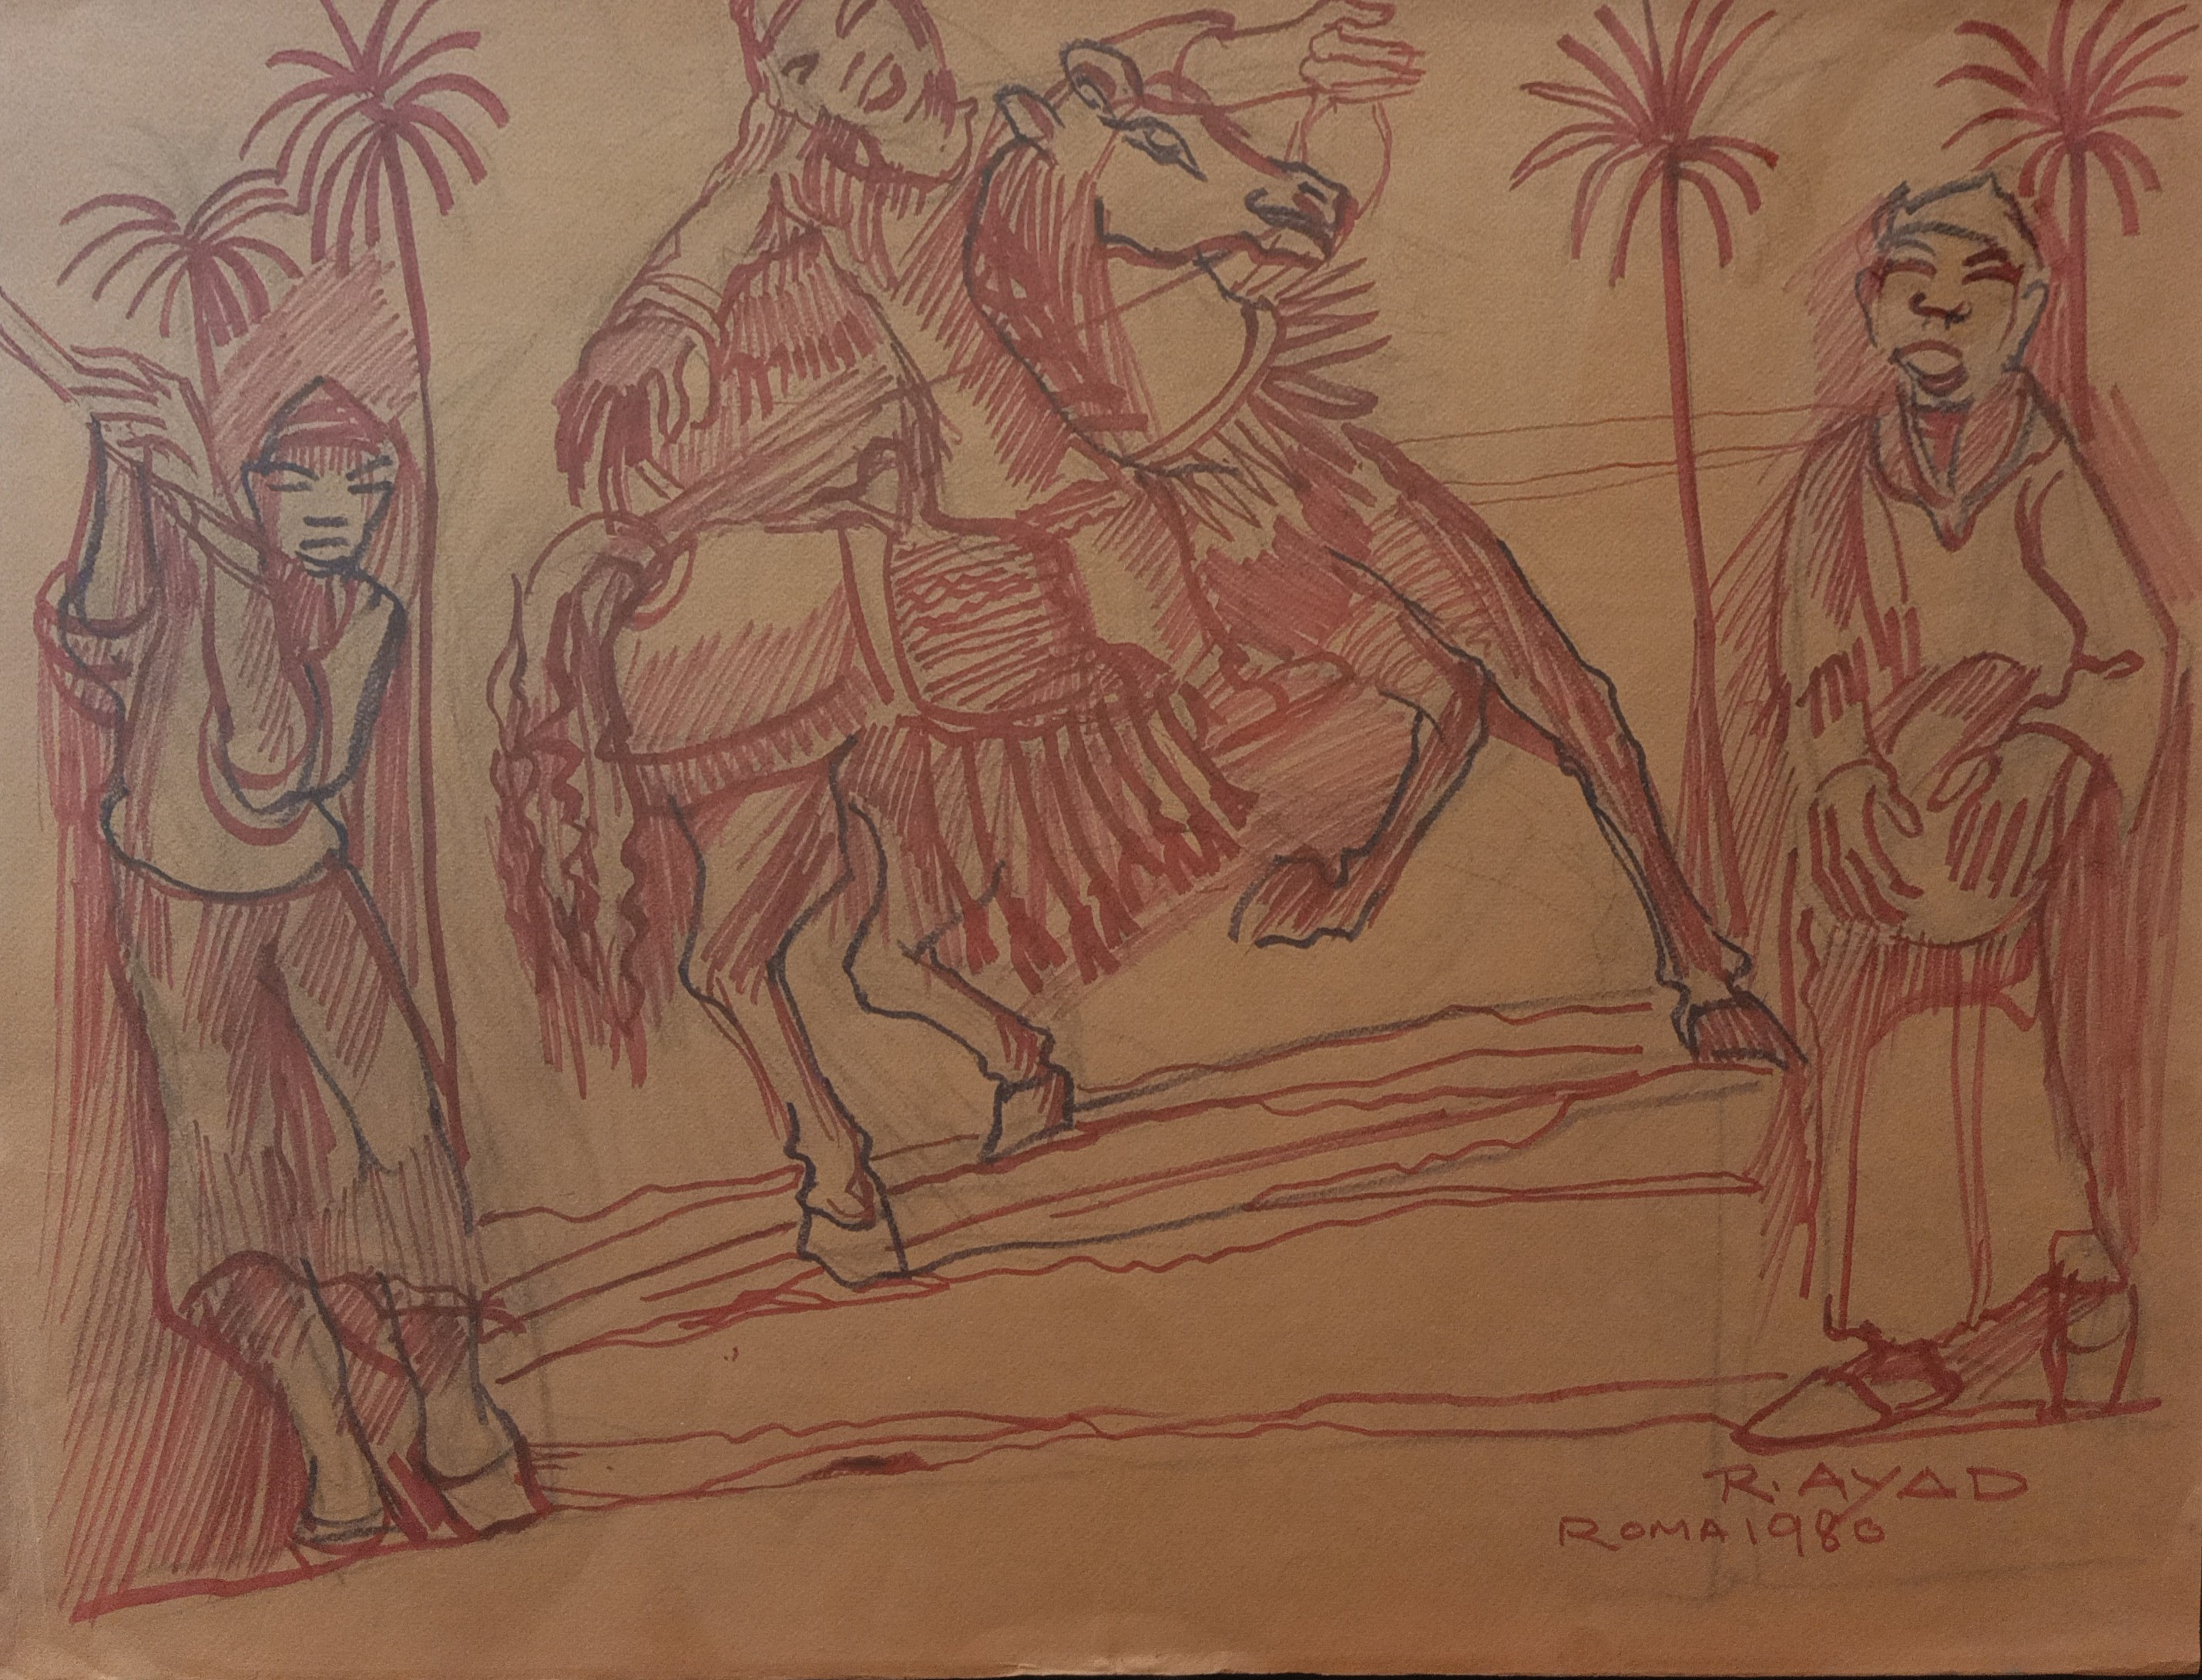 Ragheb Ayad, Danse de chevaux, 1980. Mixed media on thick paper 50×70 cm Signed and dated bottom right.